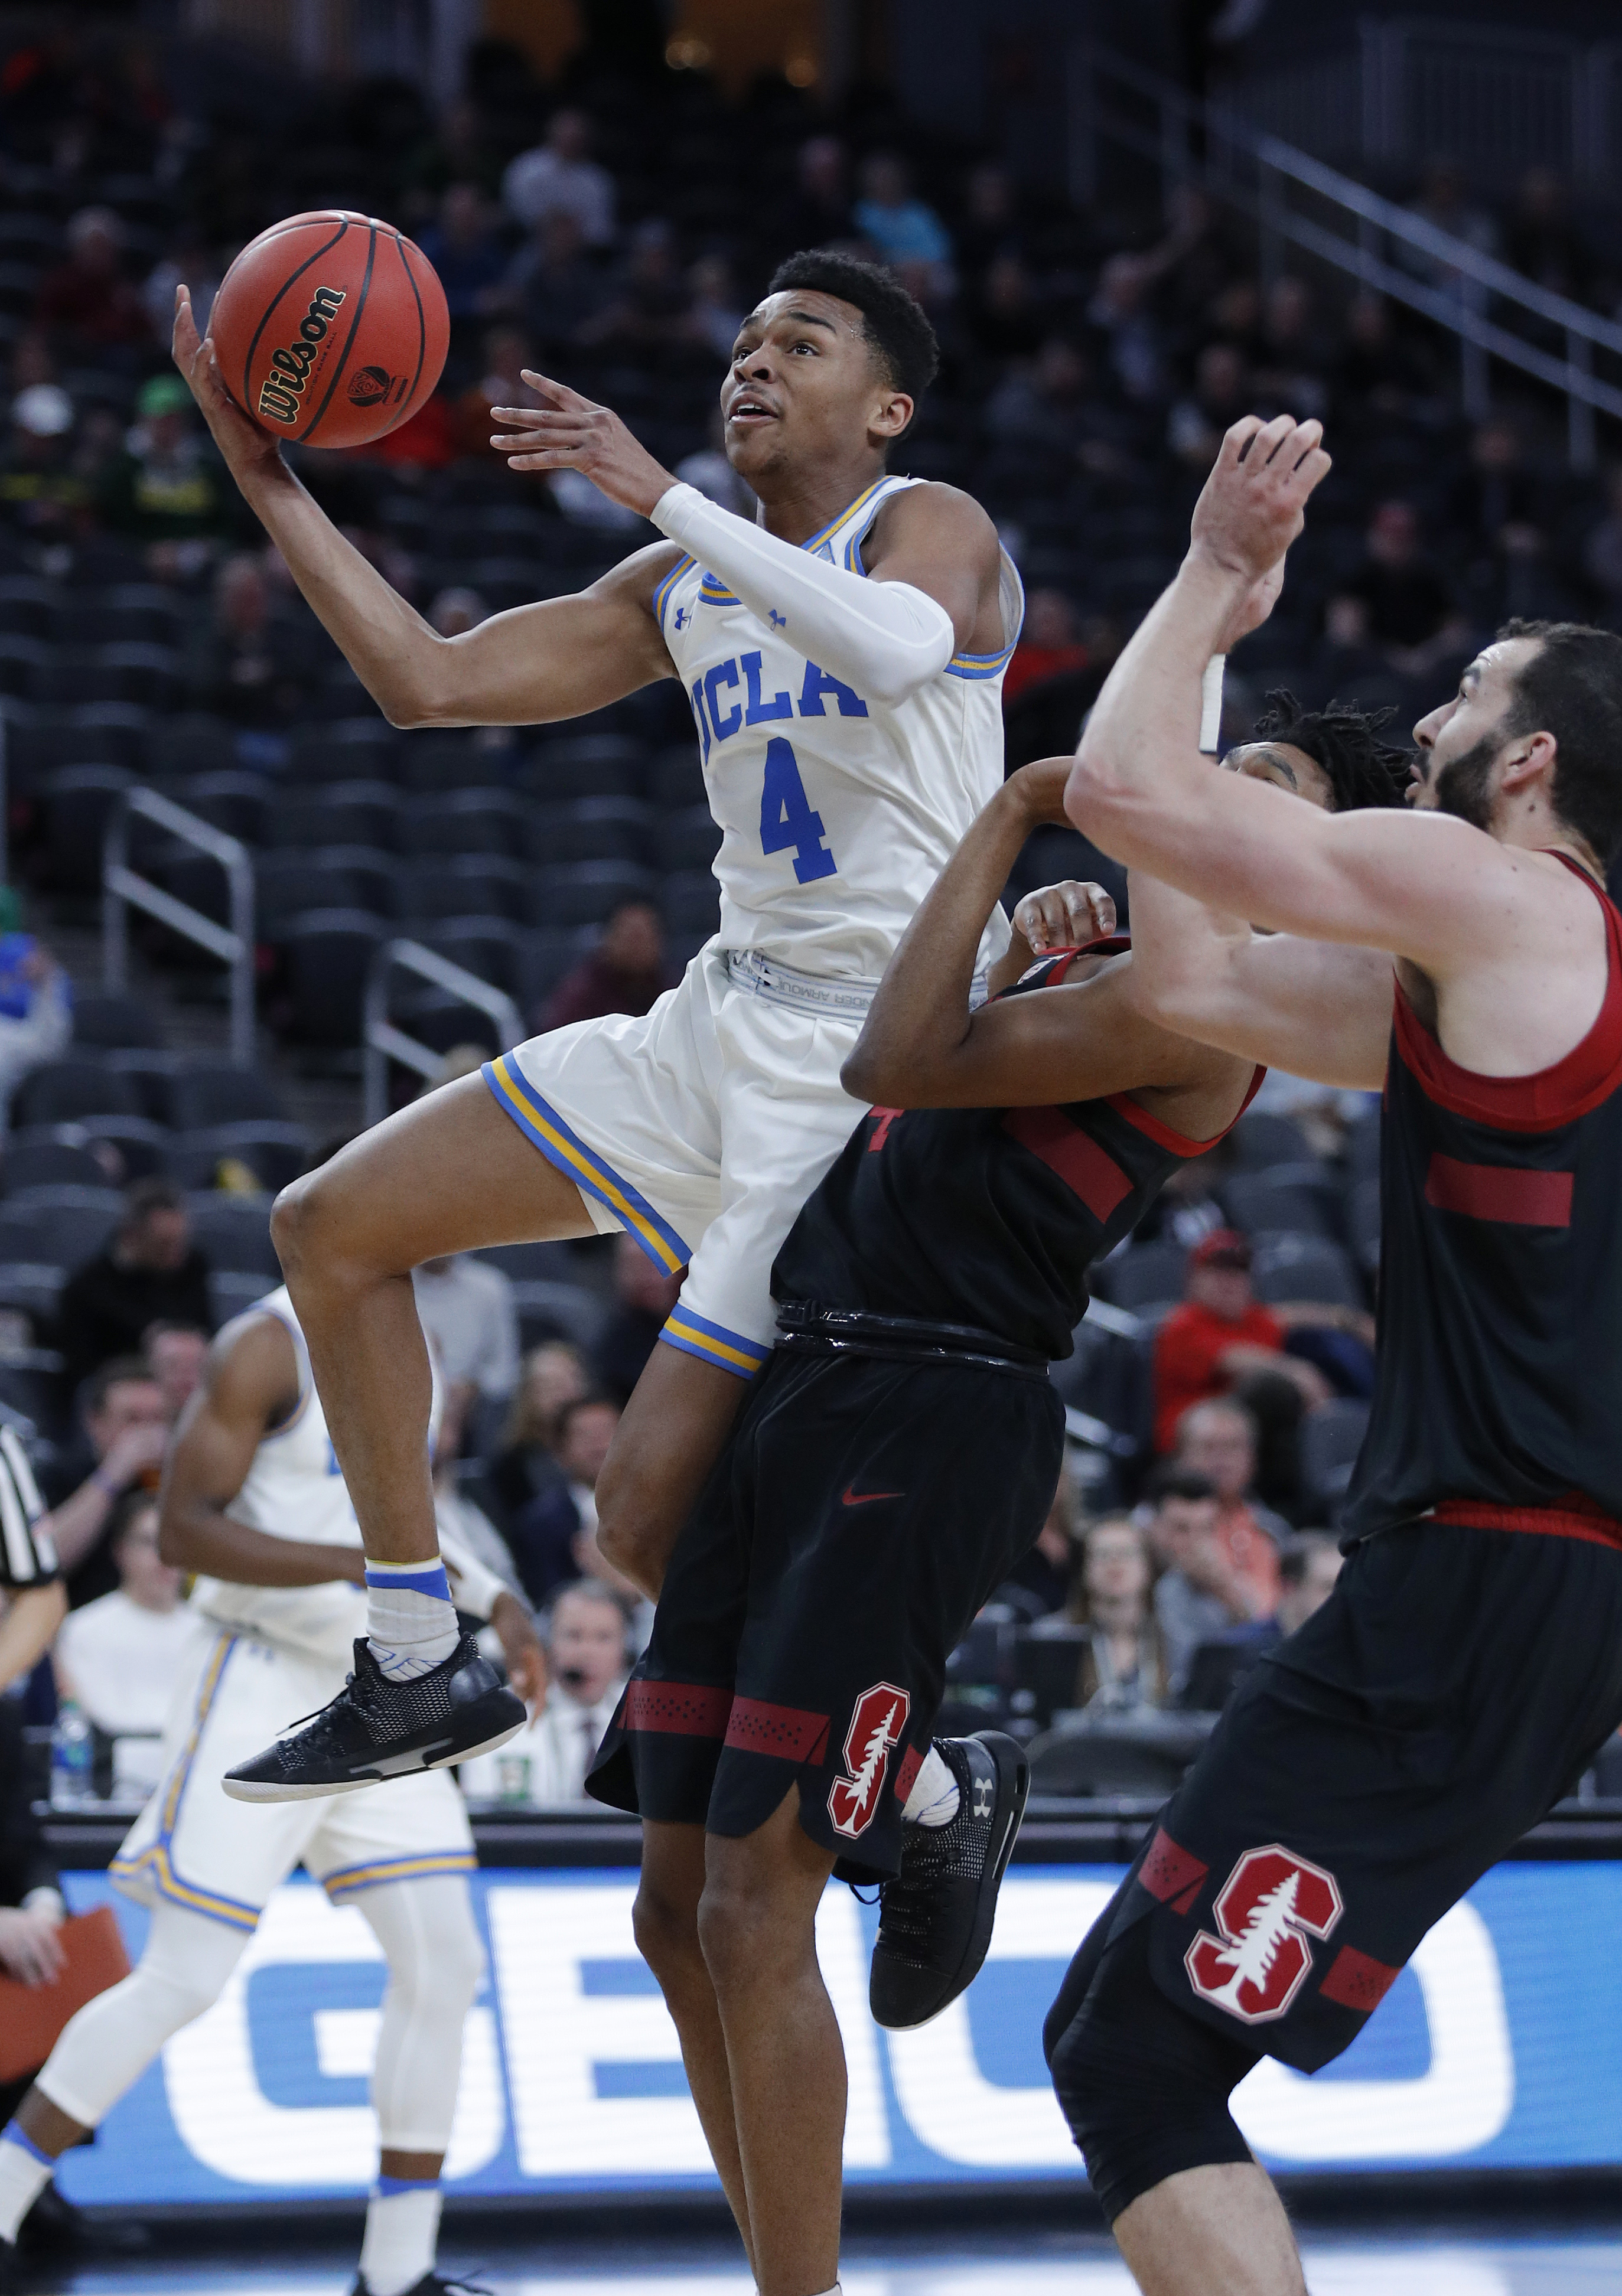 UCLA holds off Stanford 79-72 in Pac-12 tournament opener